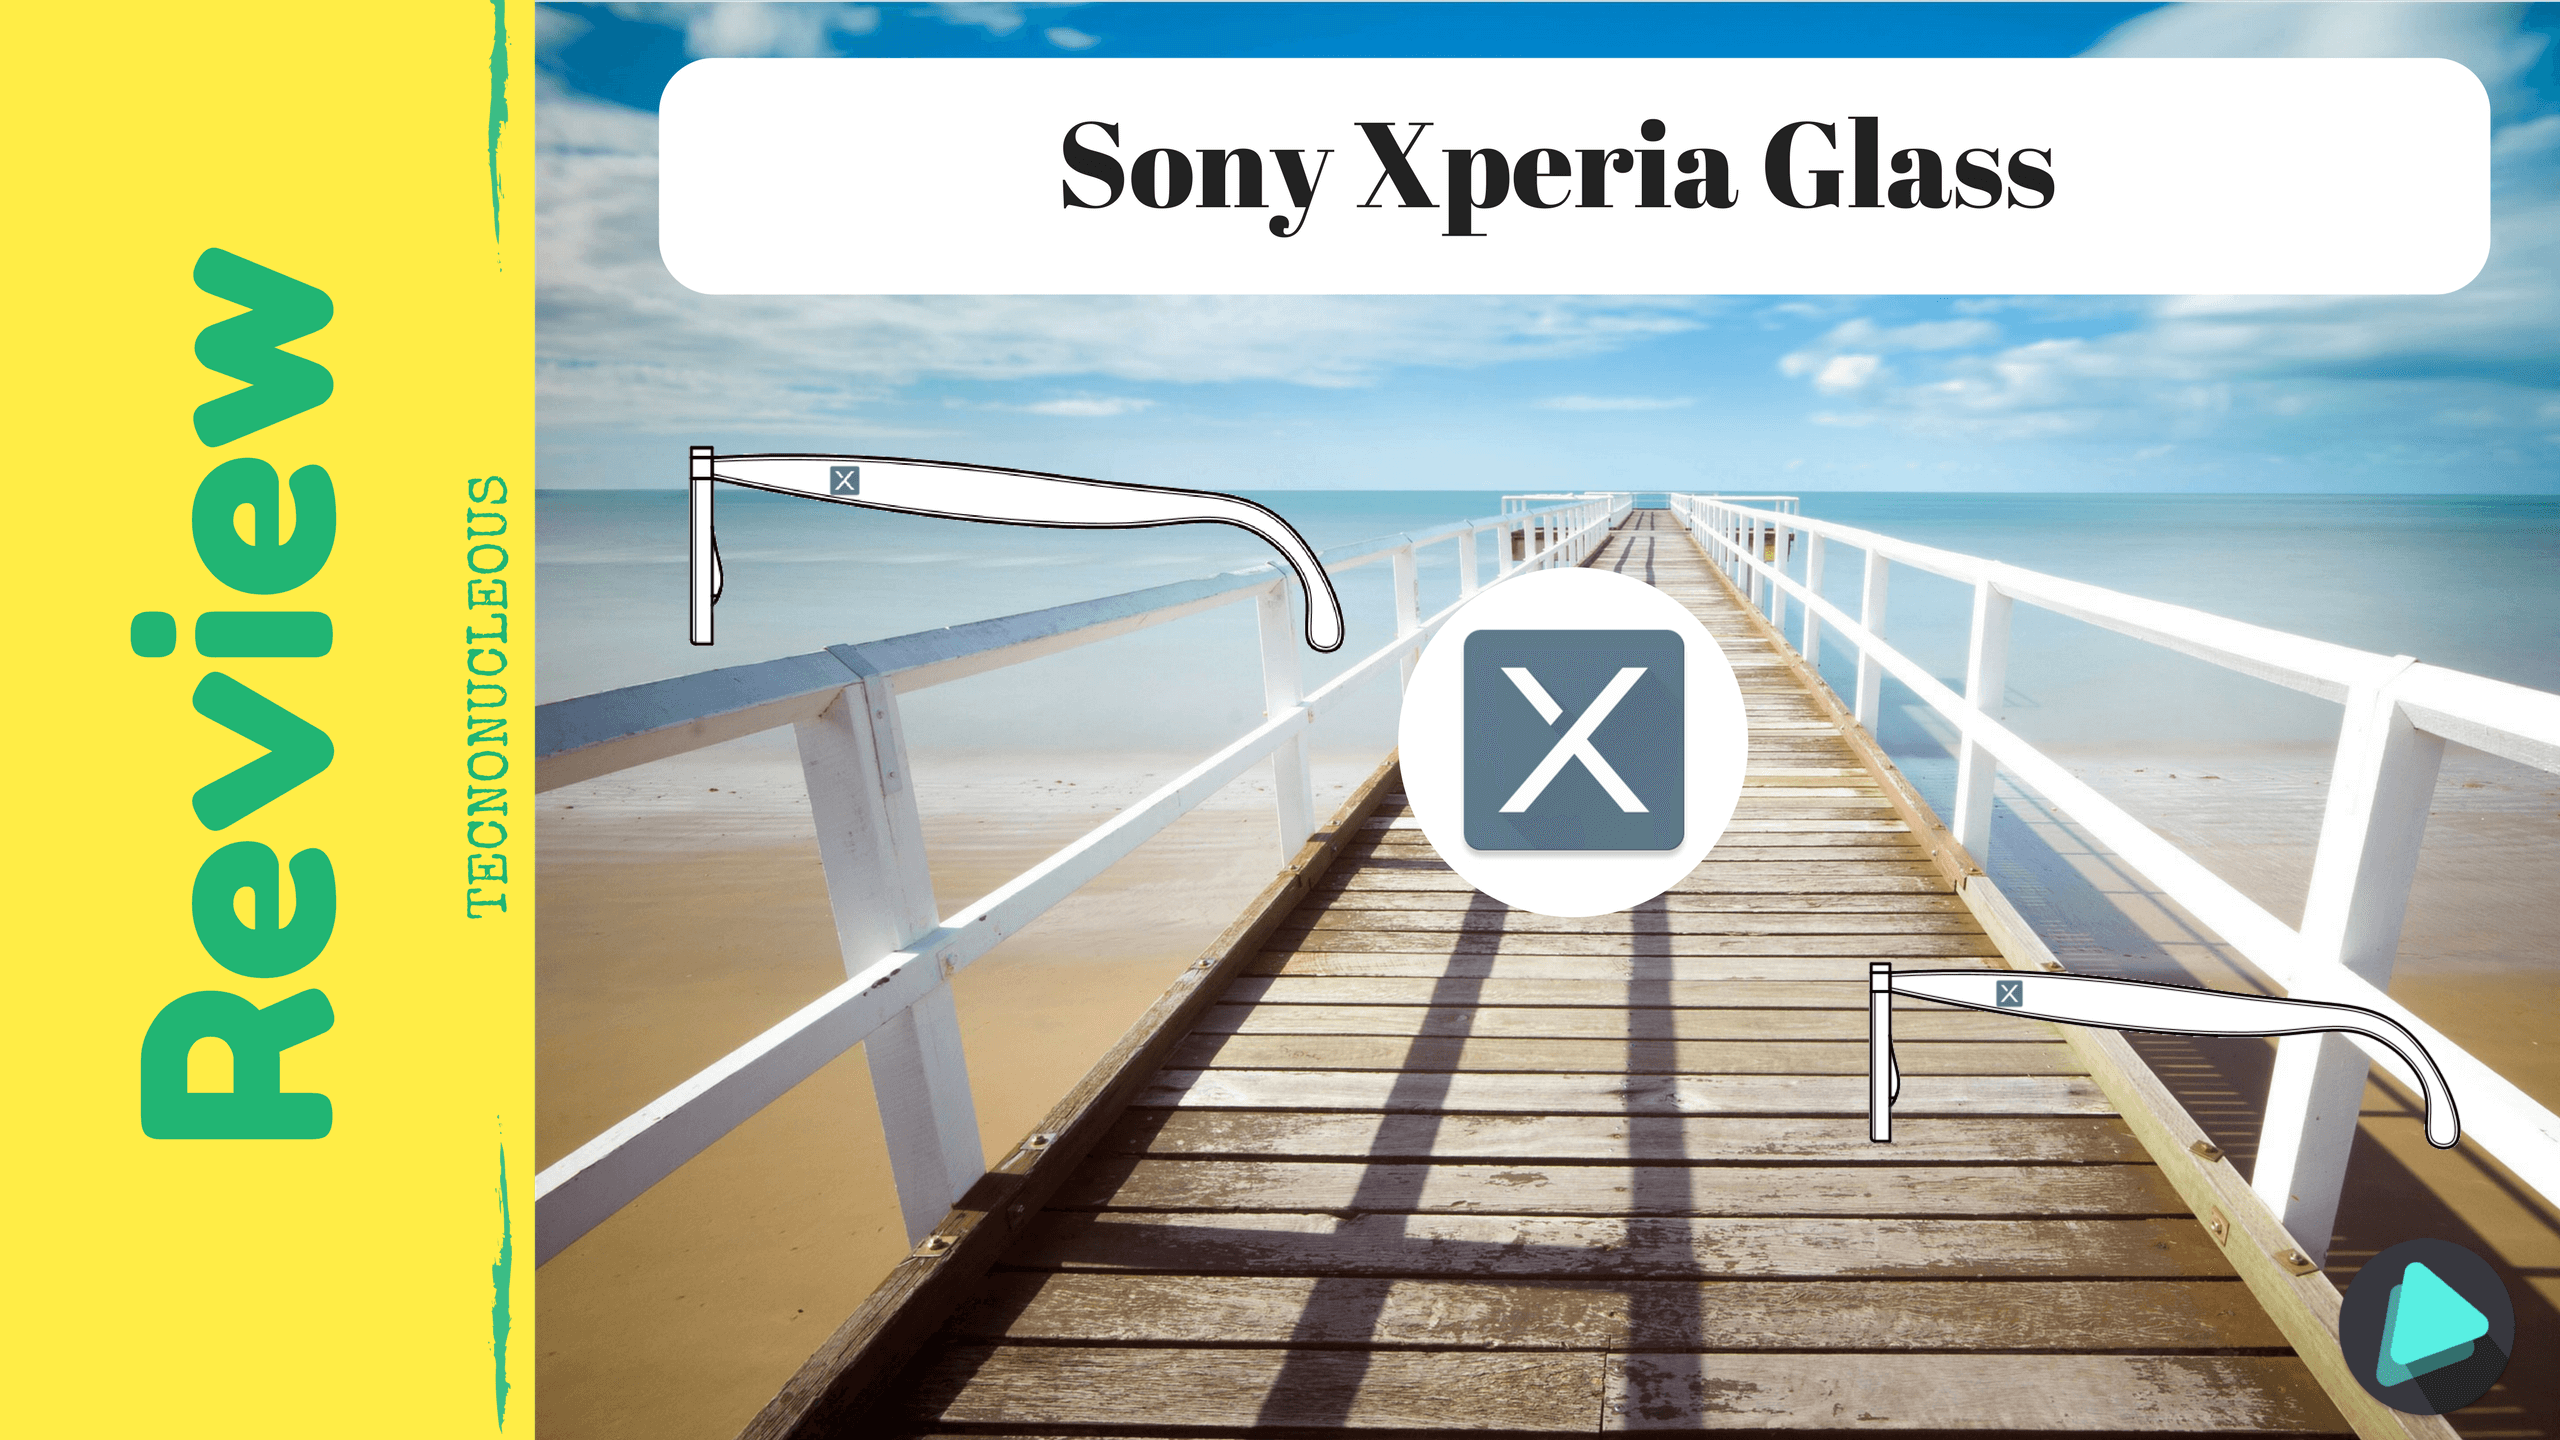 Review de las gafas Sony Xperia Glass